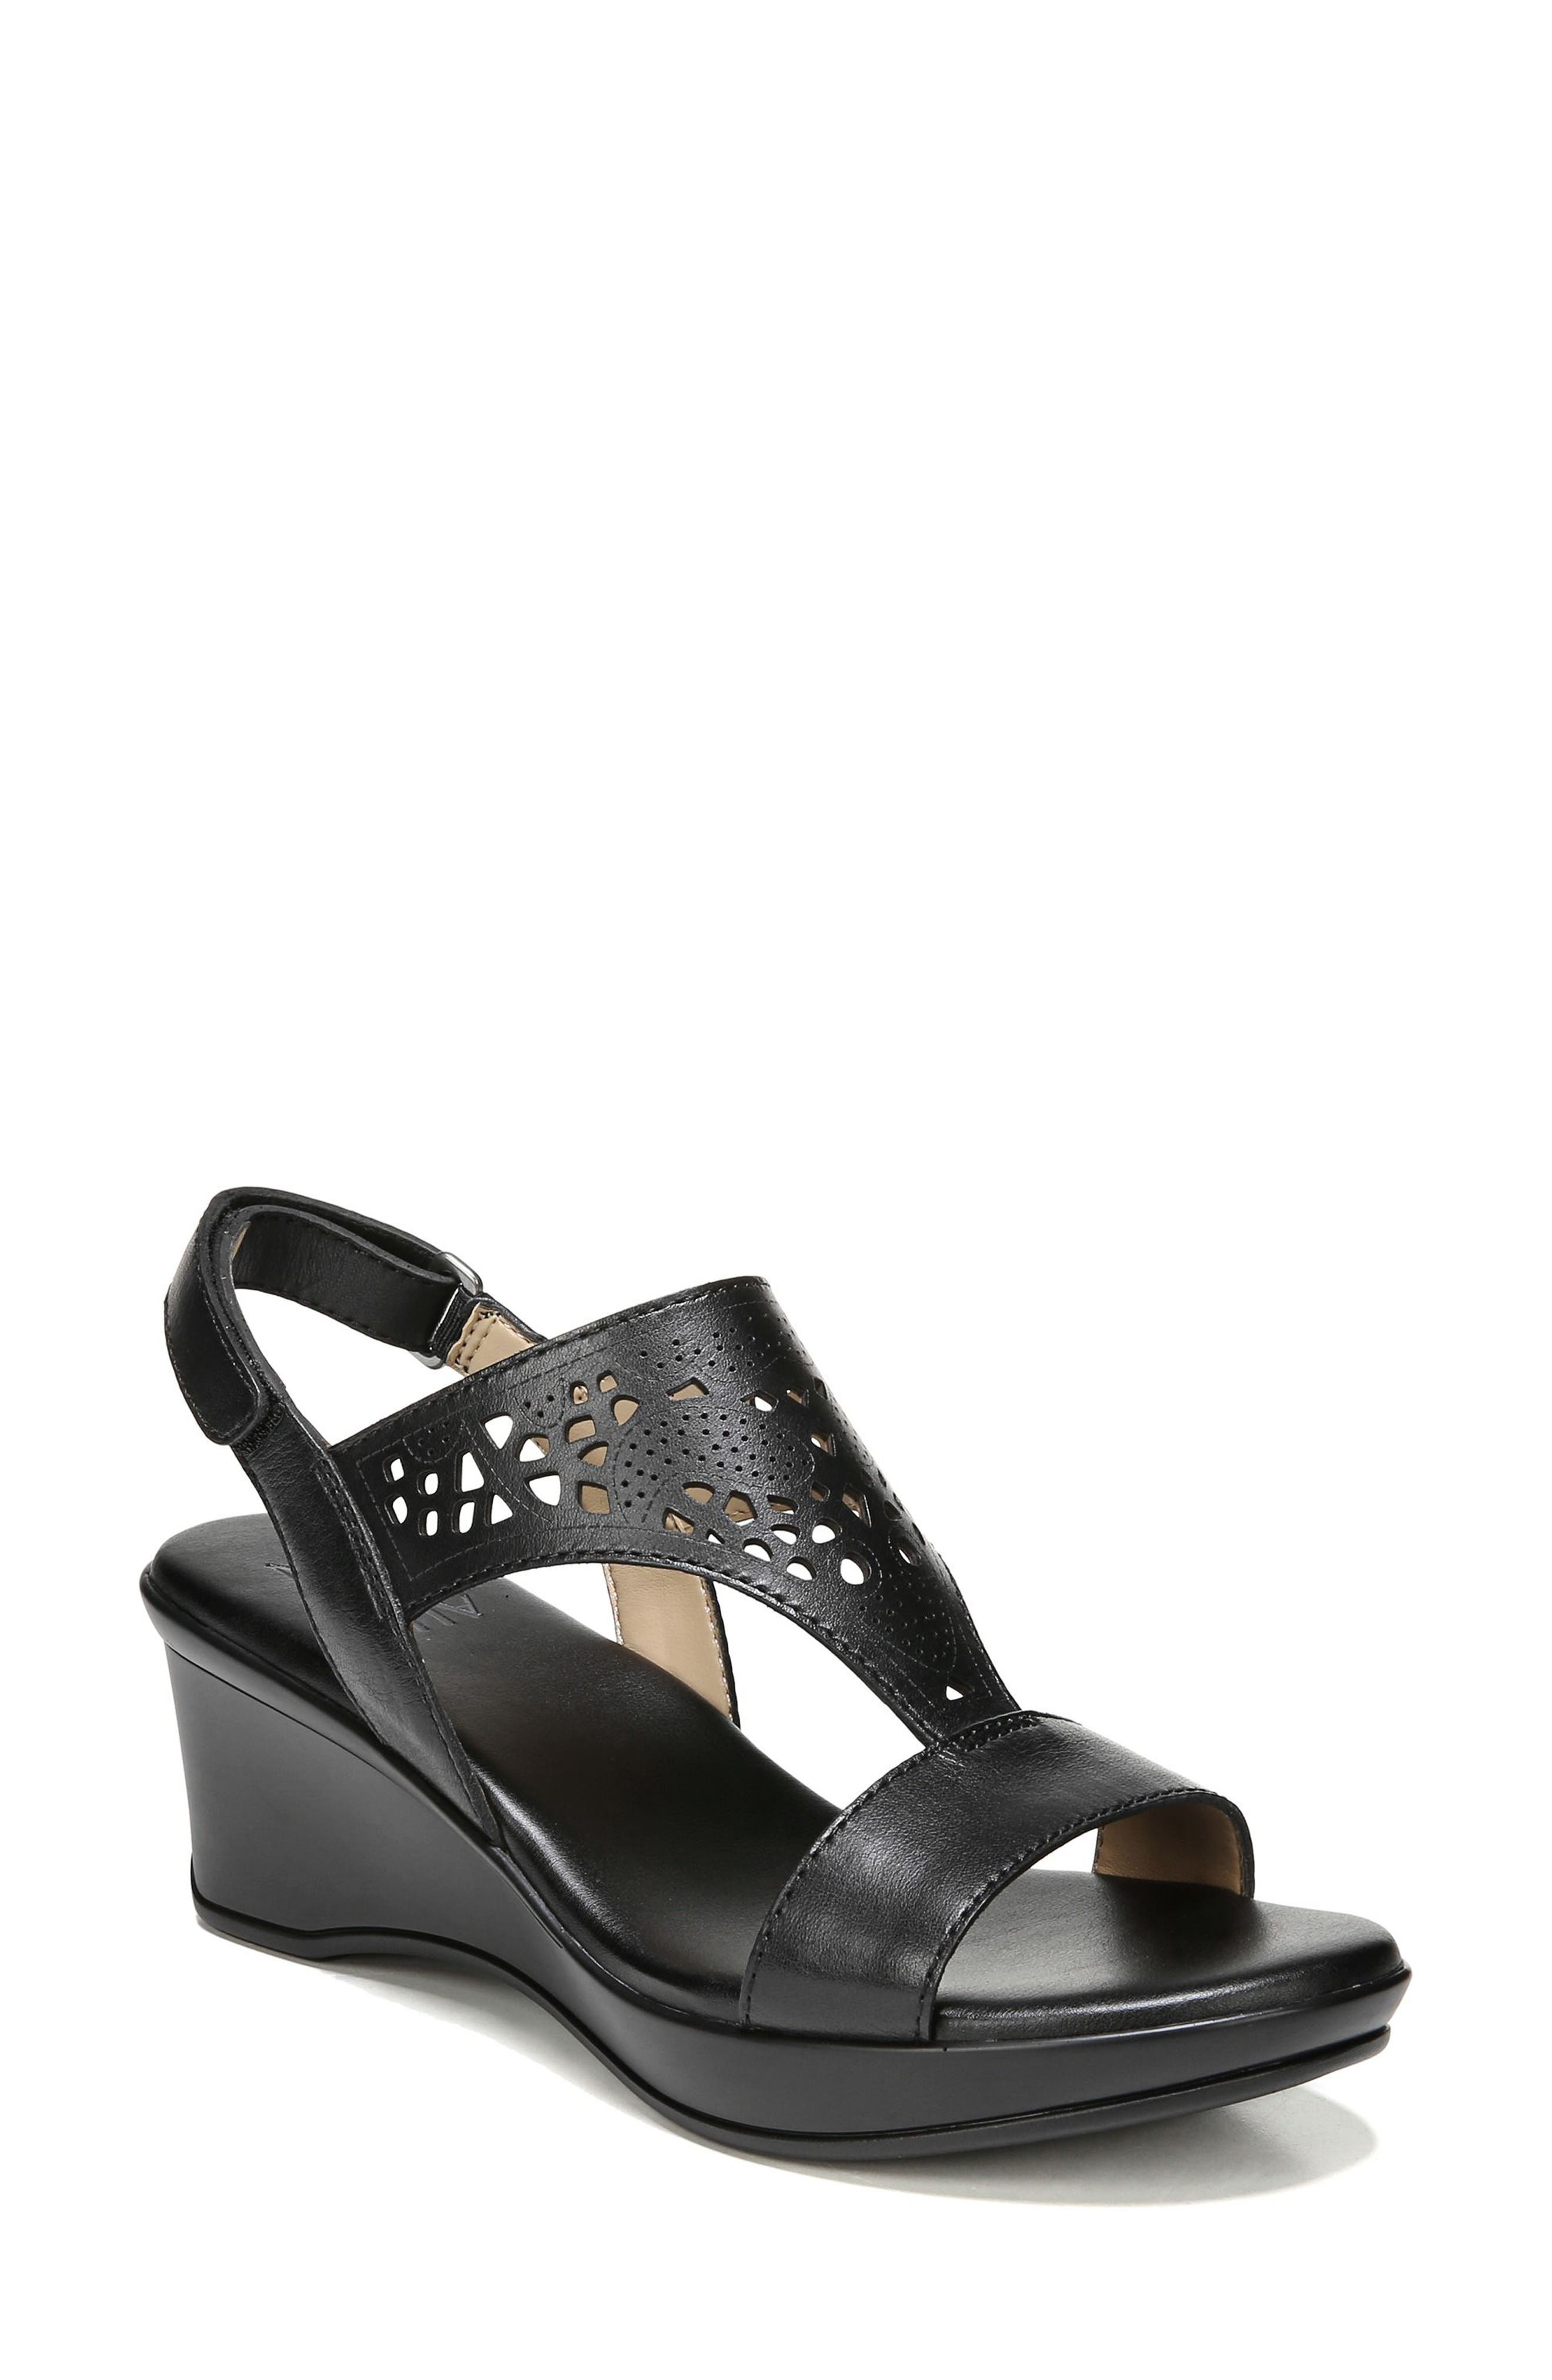 Veda Wedge Sandal,                             Main thumbnail 1, color,                             BLACK LEATHER